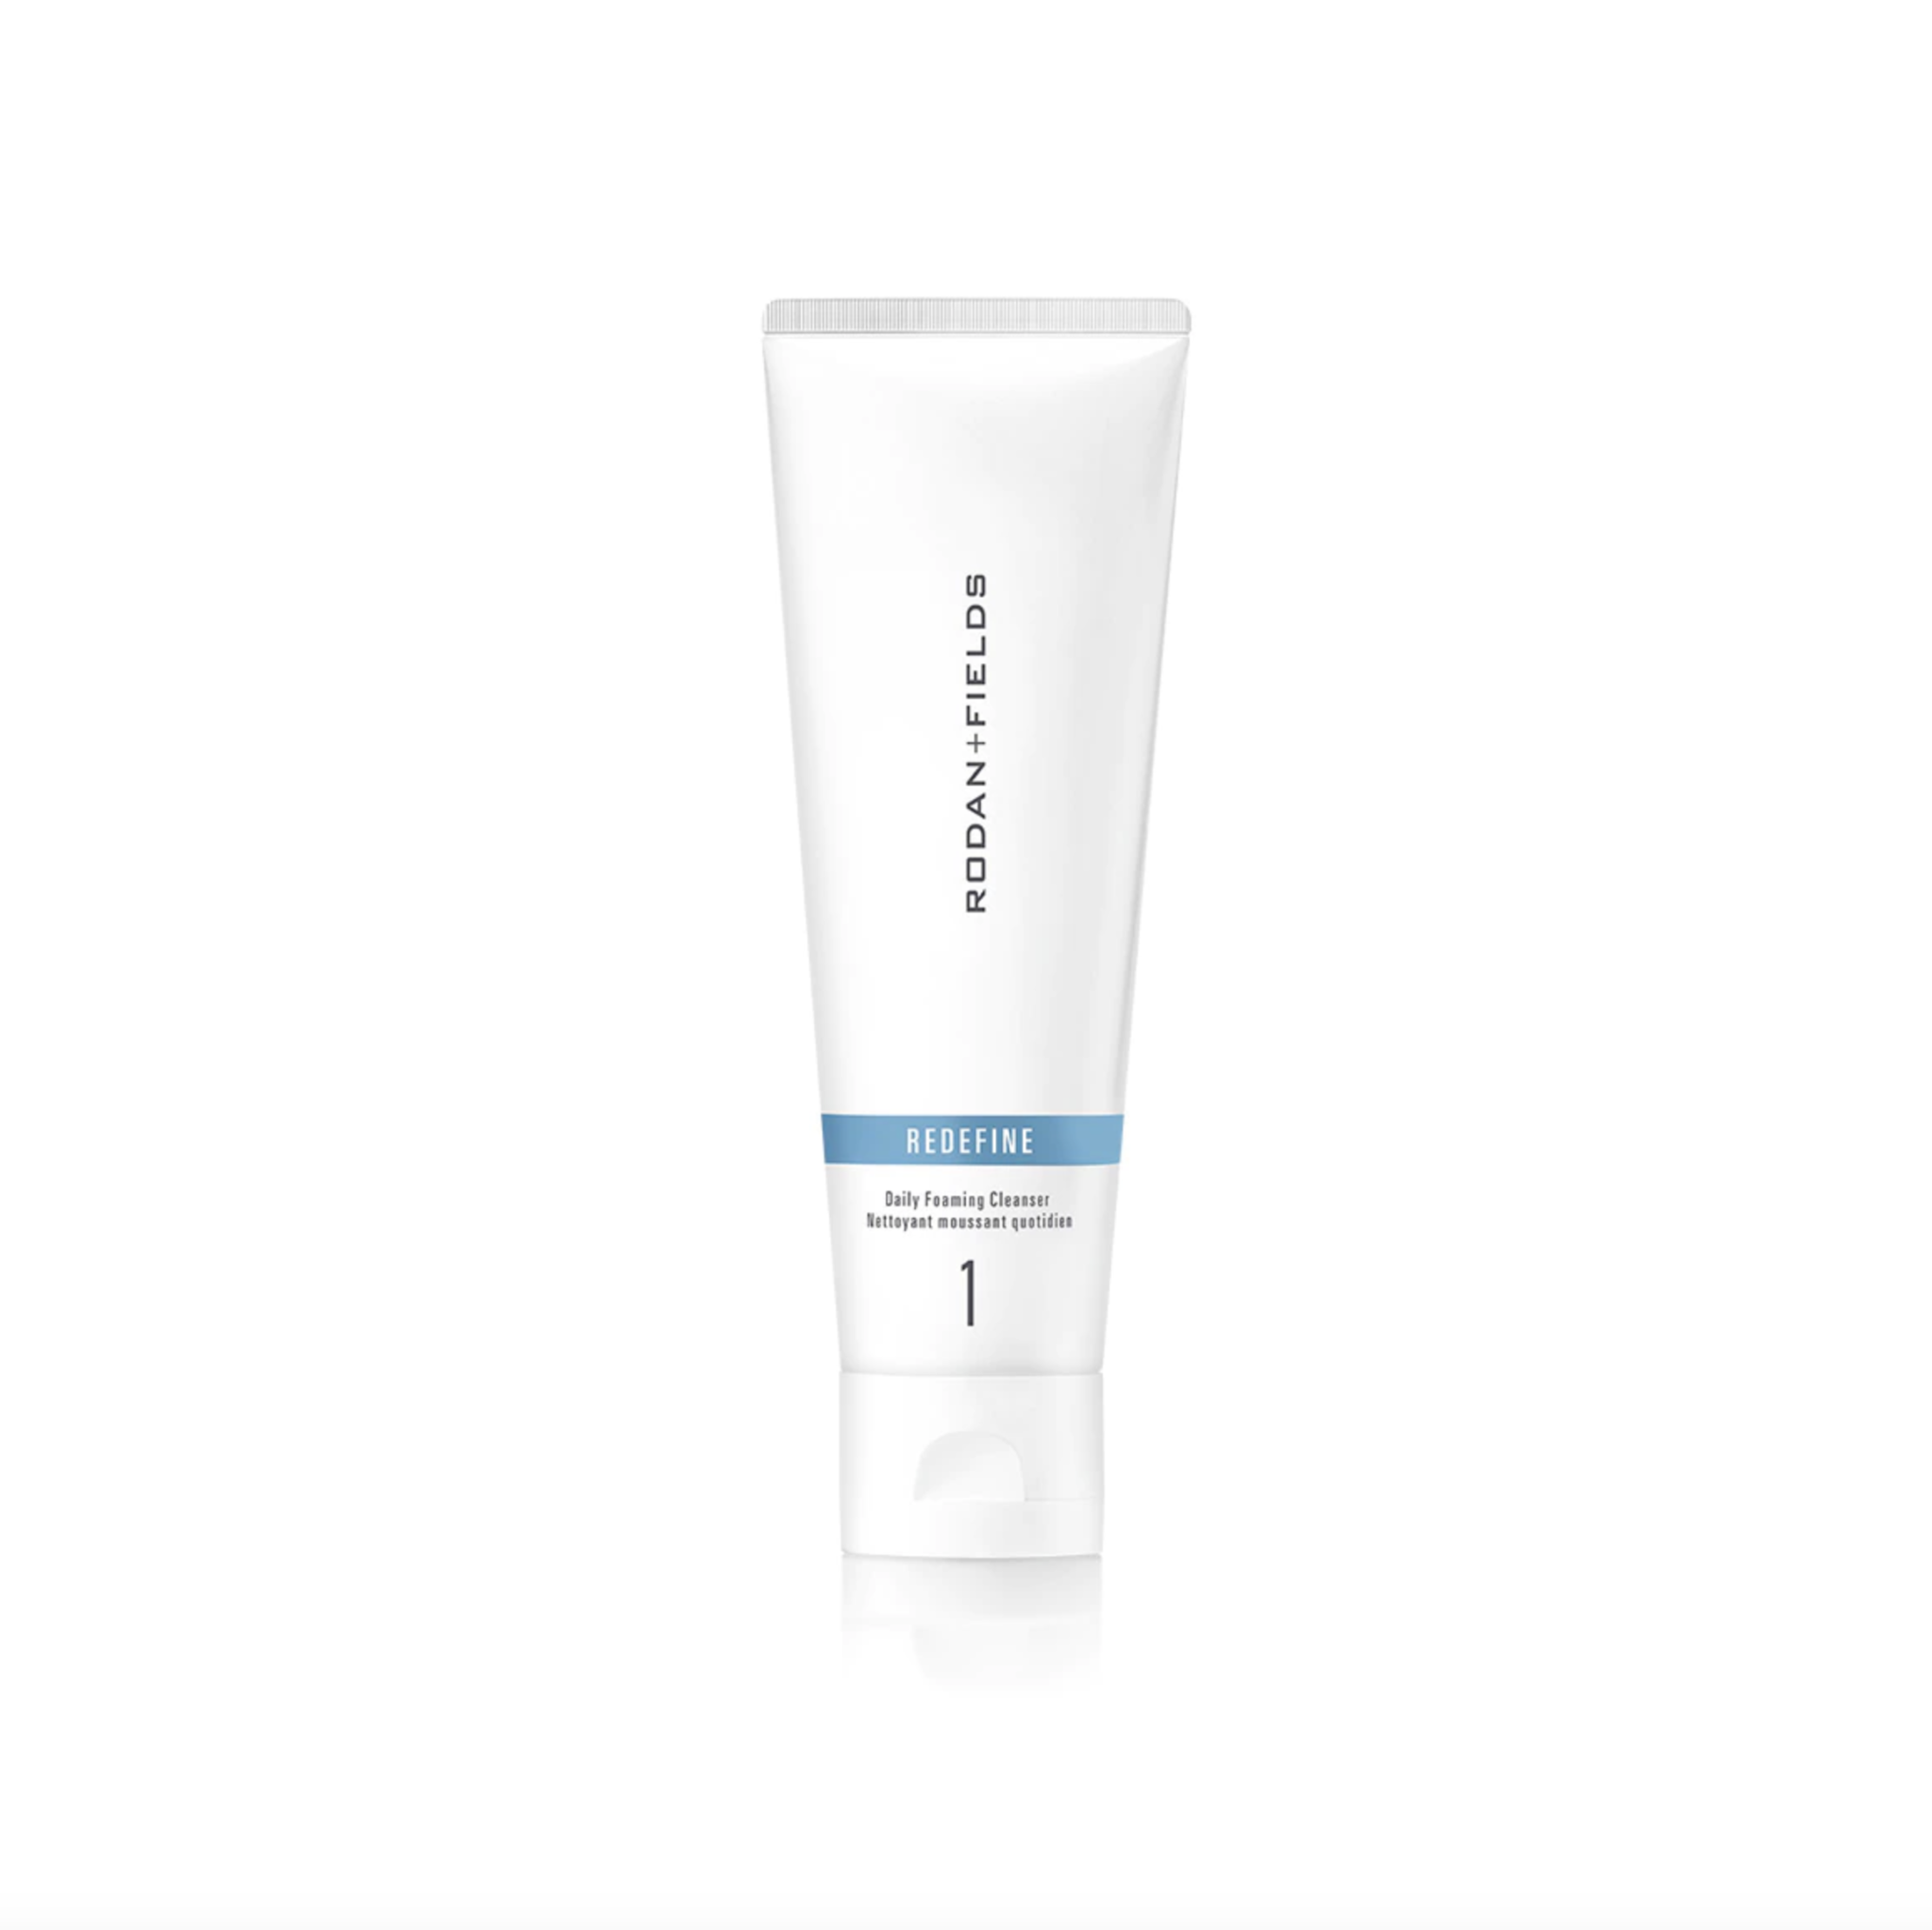 Rodan + Fields REDEFINE Daily Foaming Cleanser | Debbie Savage Orange County Beauty and Lifestyle Blogger